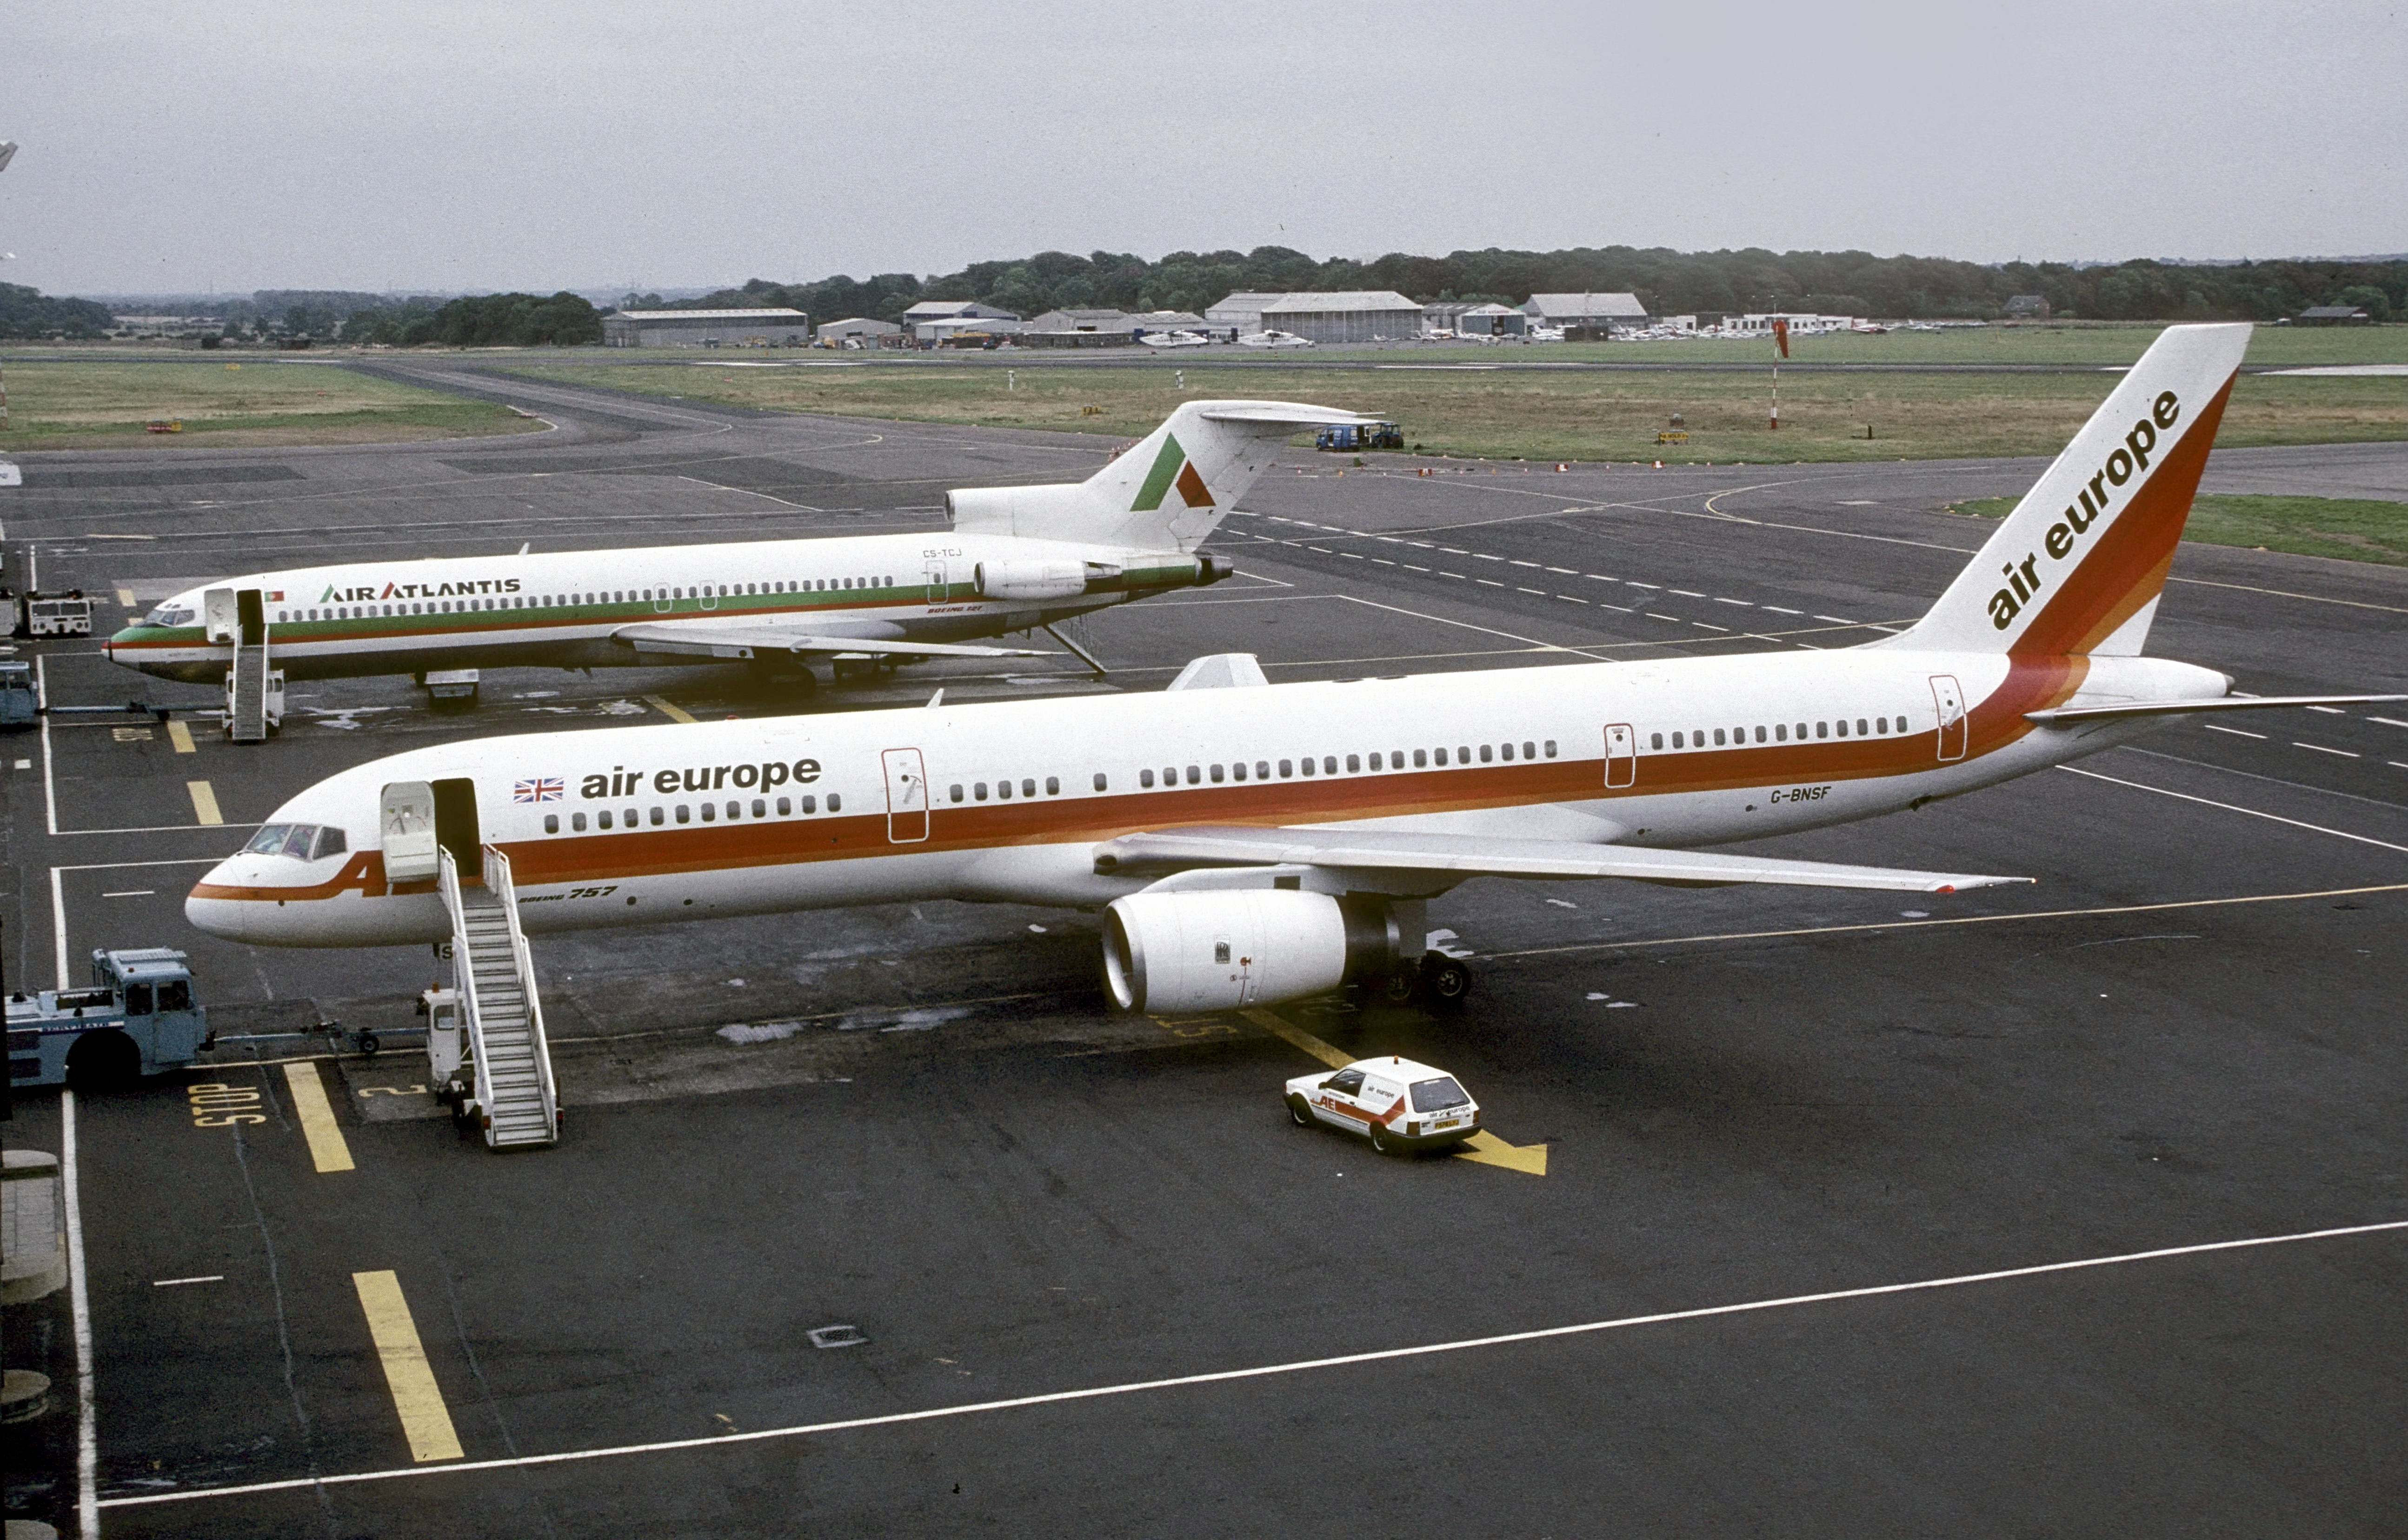 File boeing 757 236 g bnsf air europe newcastle airport for Interieur boeing 757